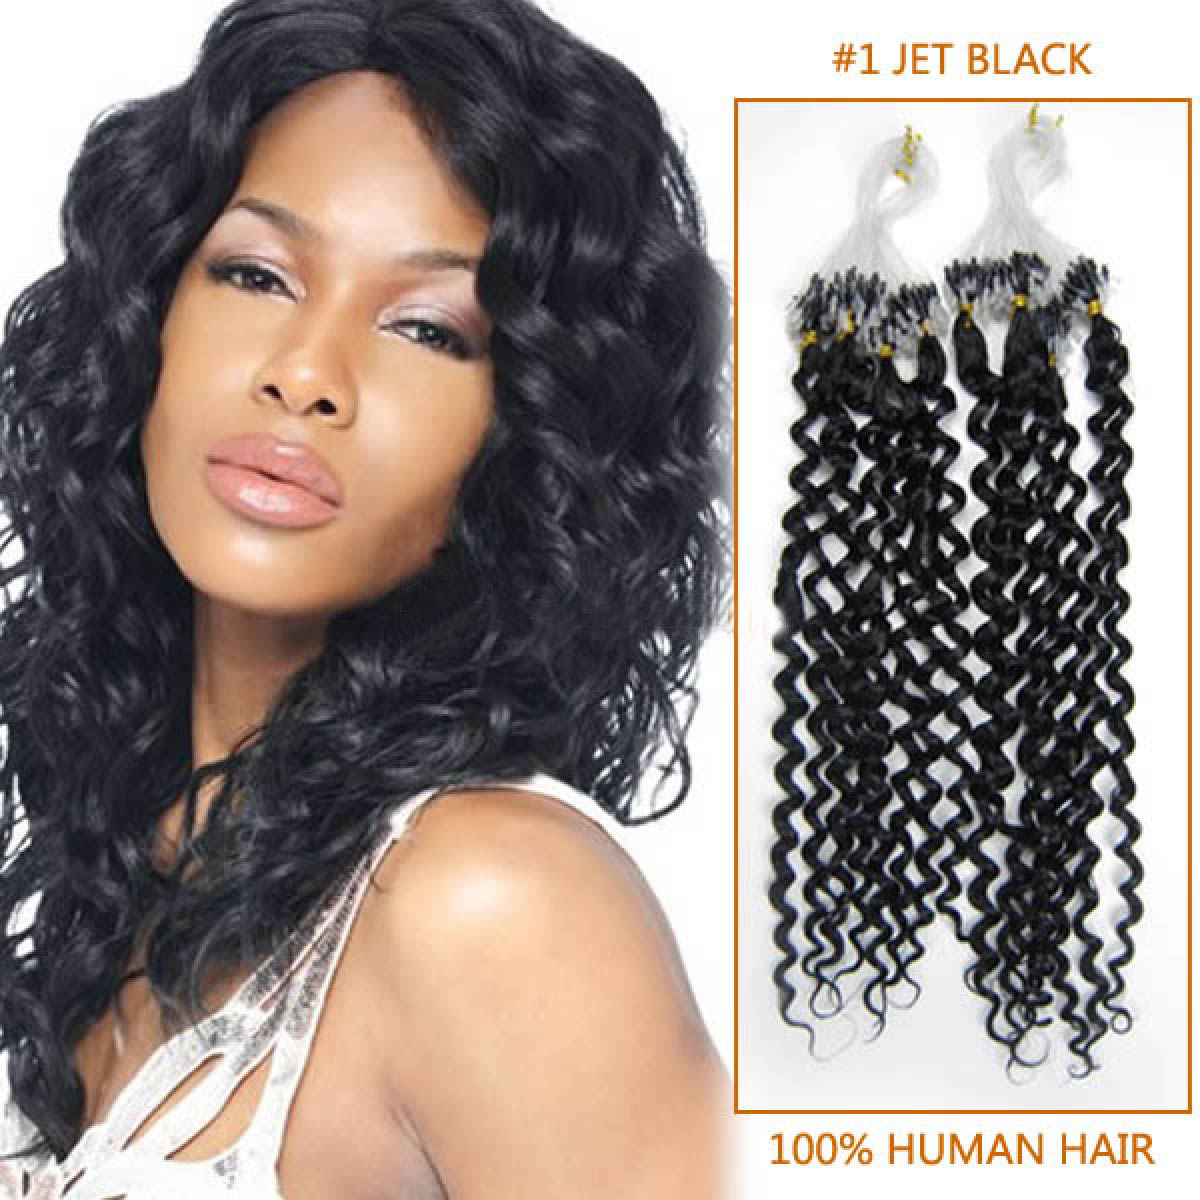 Exotic 24 Inch 1 Jet Black Curly Micro Loop Hair Extensions 100 Strands